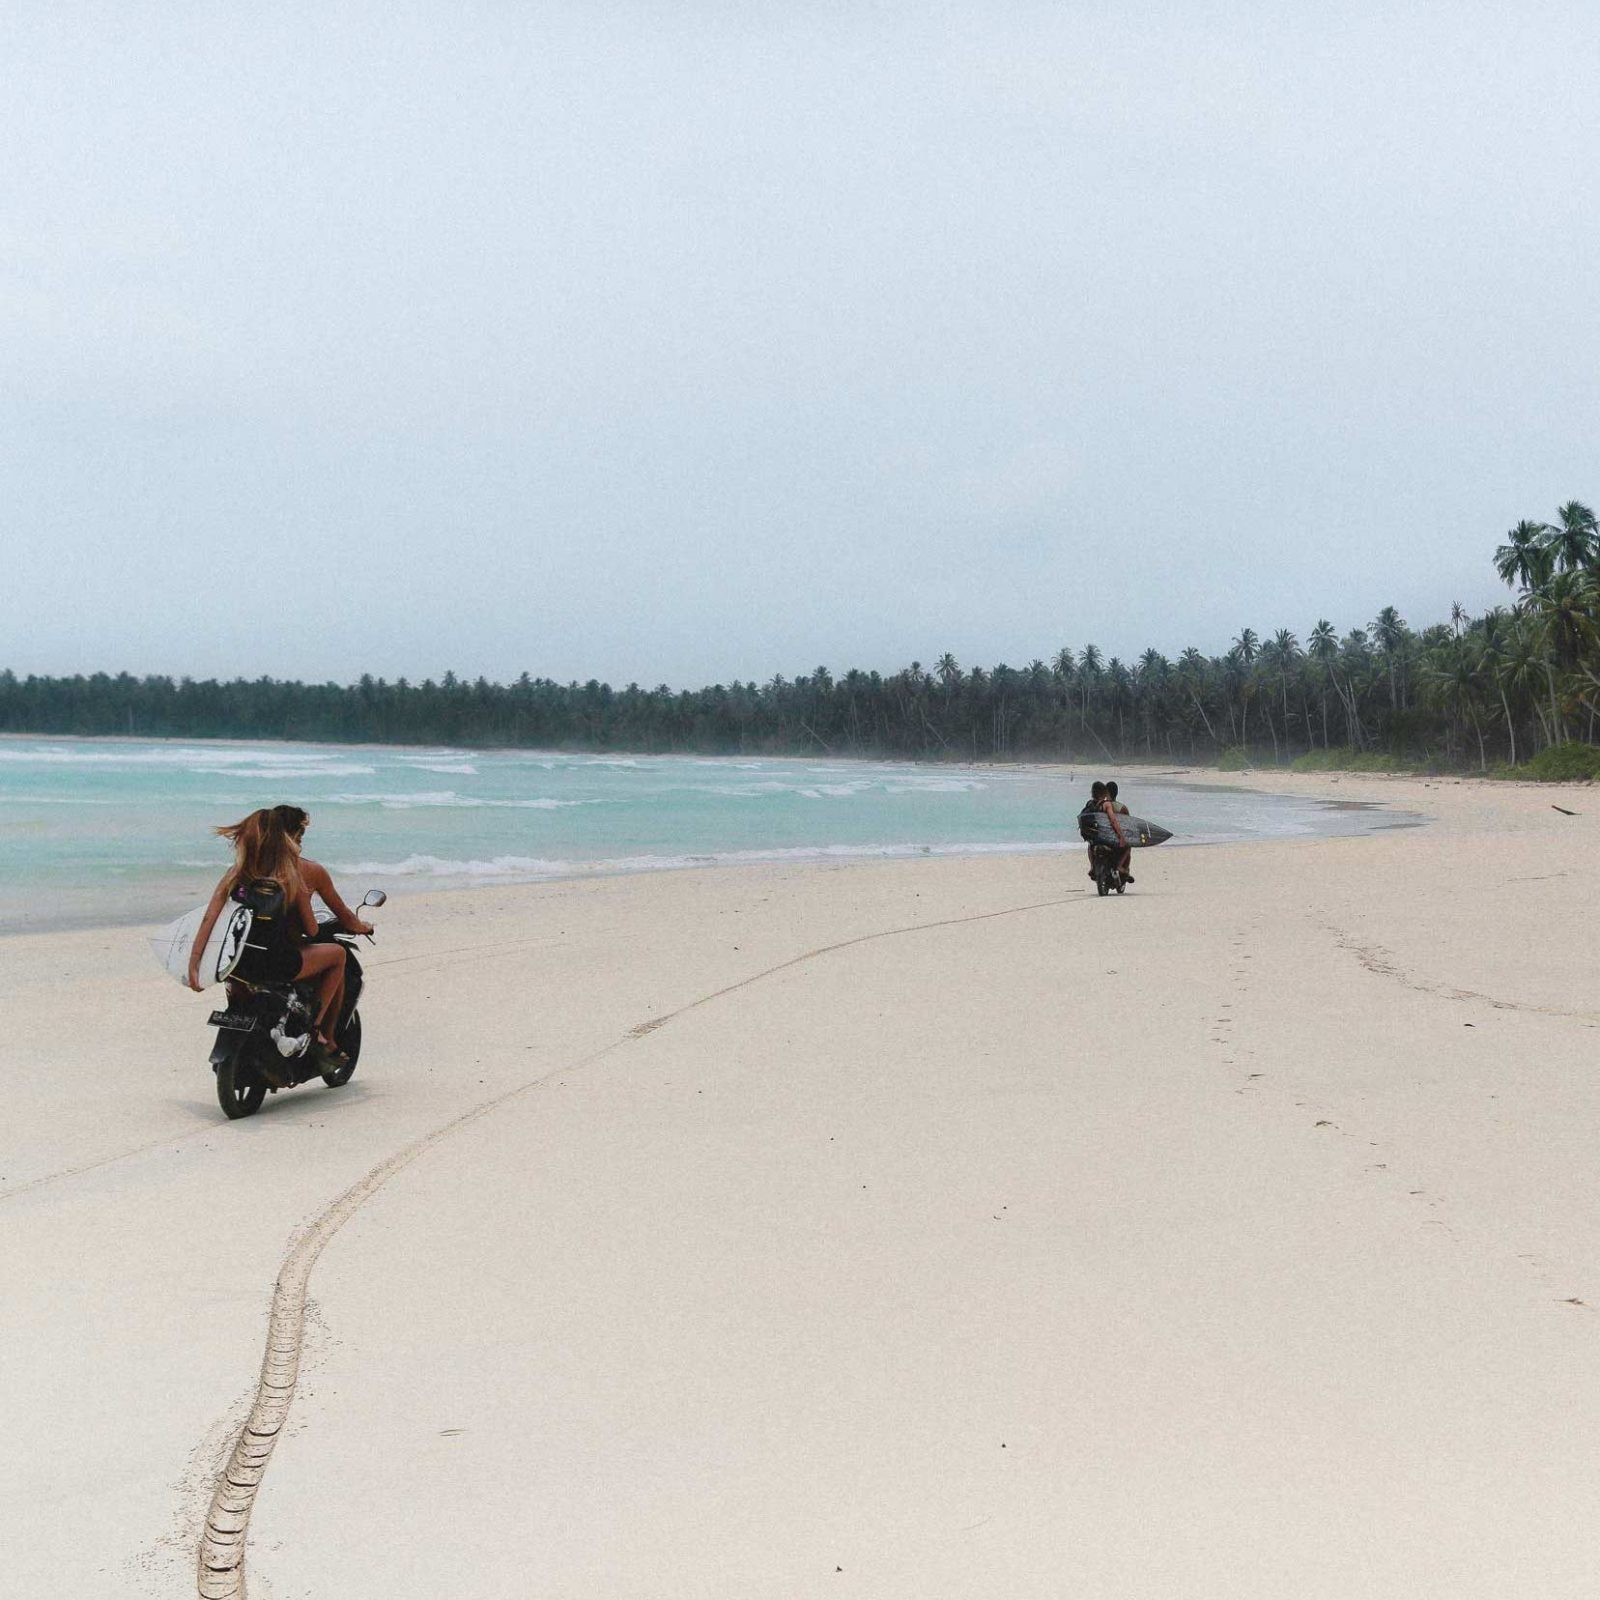 Beach-Motorcycle category